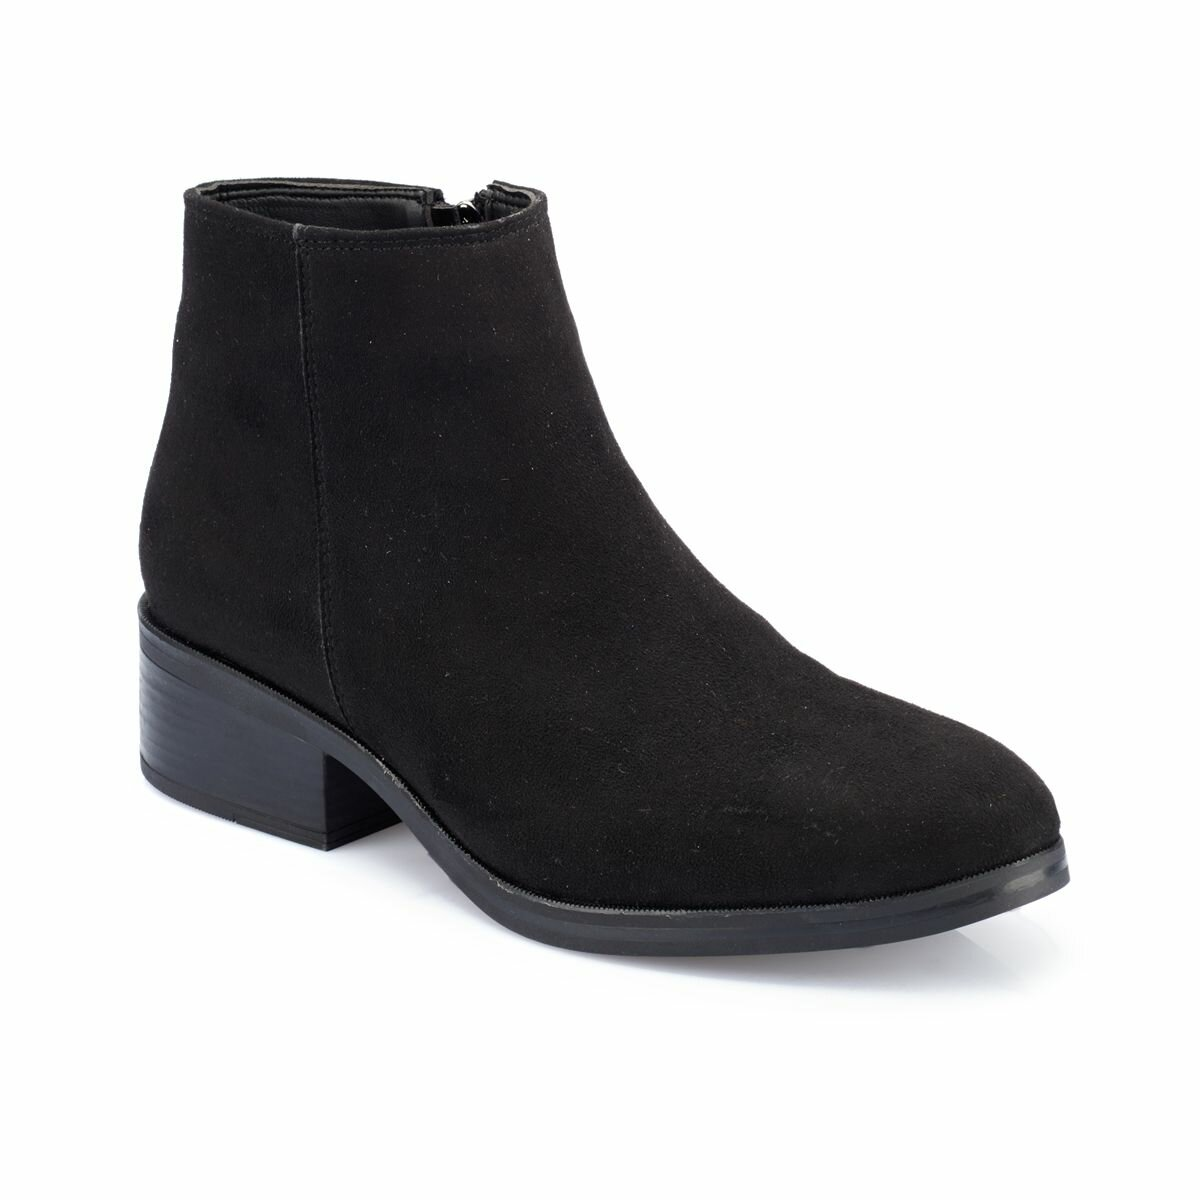 FLO 82.312270SZ Black Women Boots Polaris